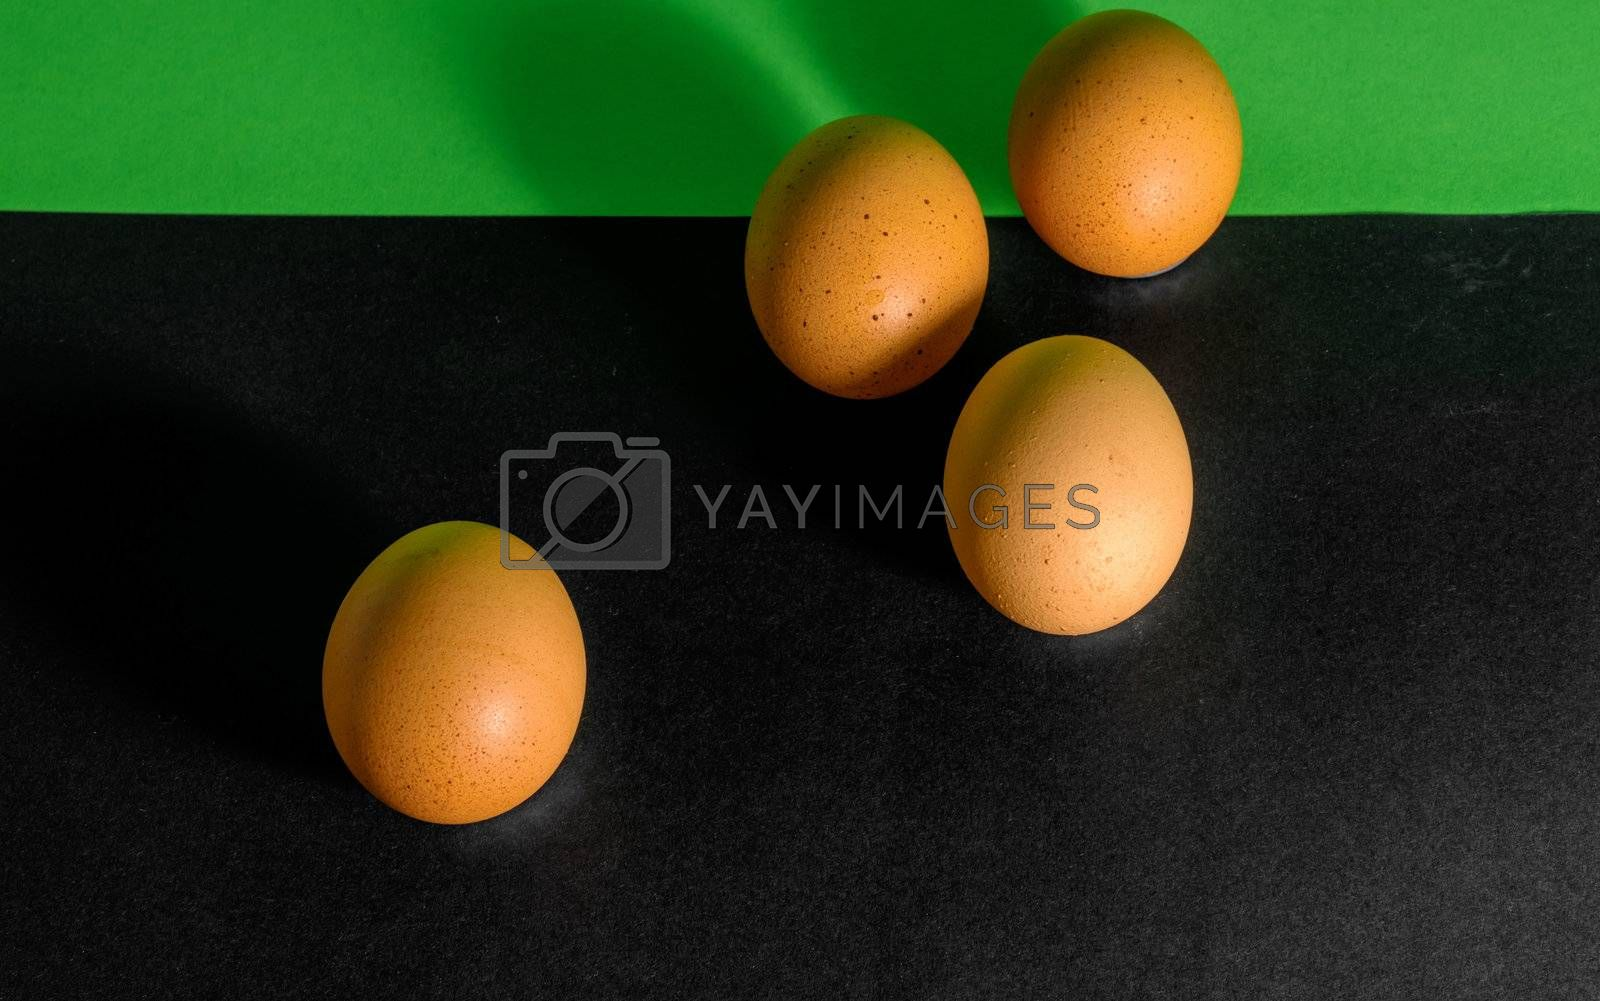 Abstract picture at Easter, four eggs from a predominantly black and in the upper part green background, concept